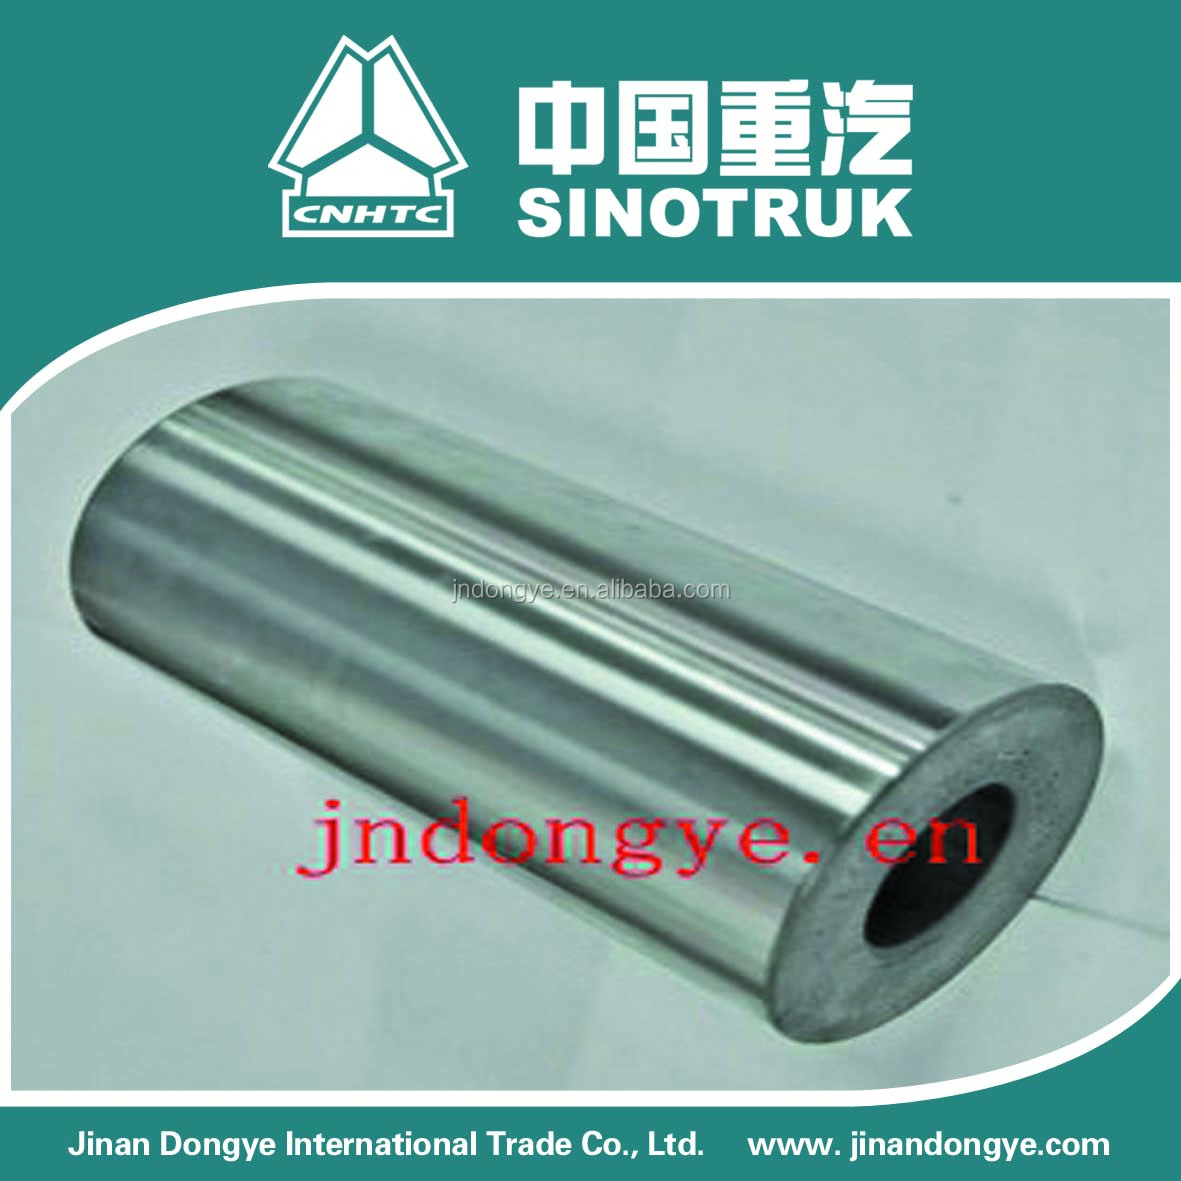 sinotruk spare part, HOWO truck engine parts piston pin VG1560030013